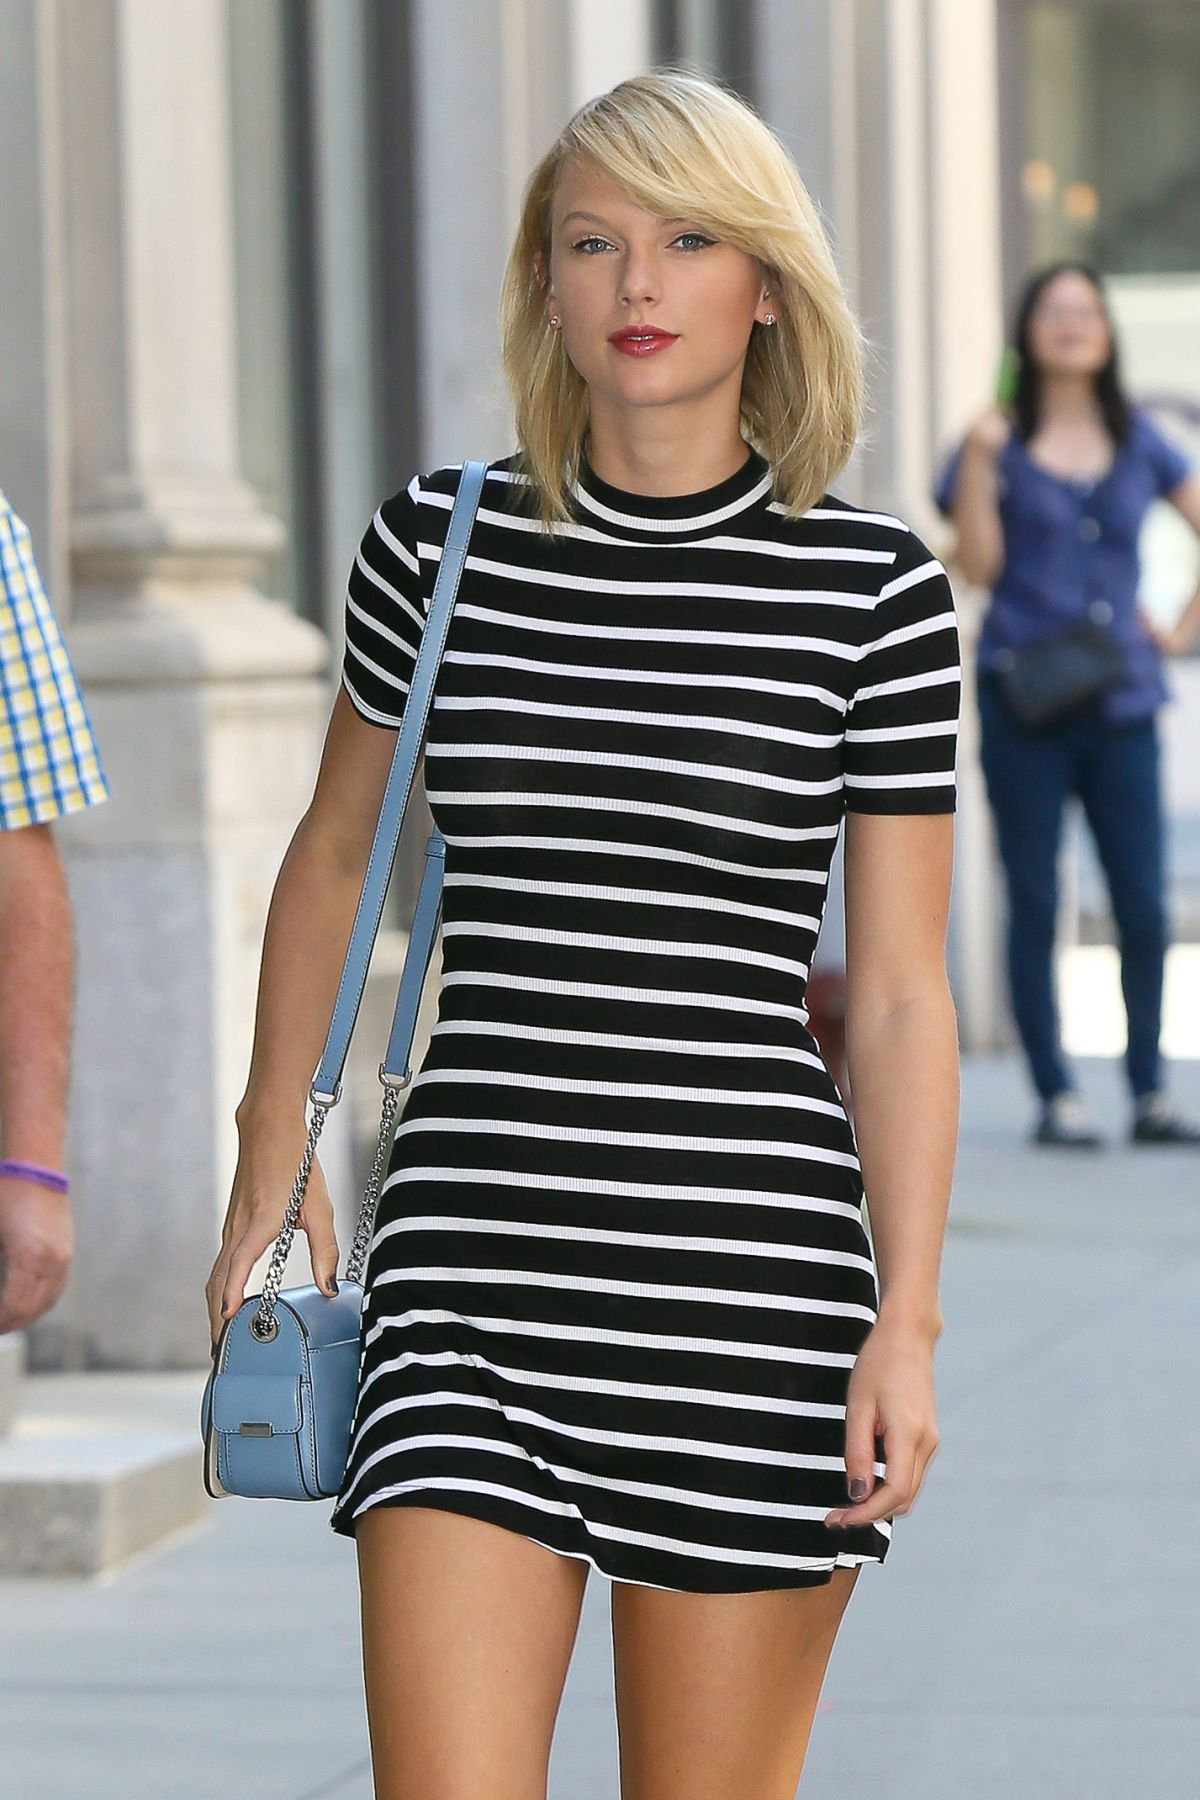 TAYLOR SWIFT Out and About in New York 09/14/2016 - HawtCelebs Taylor Swift